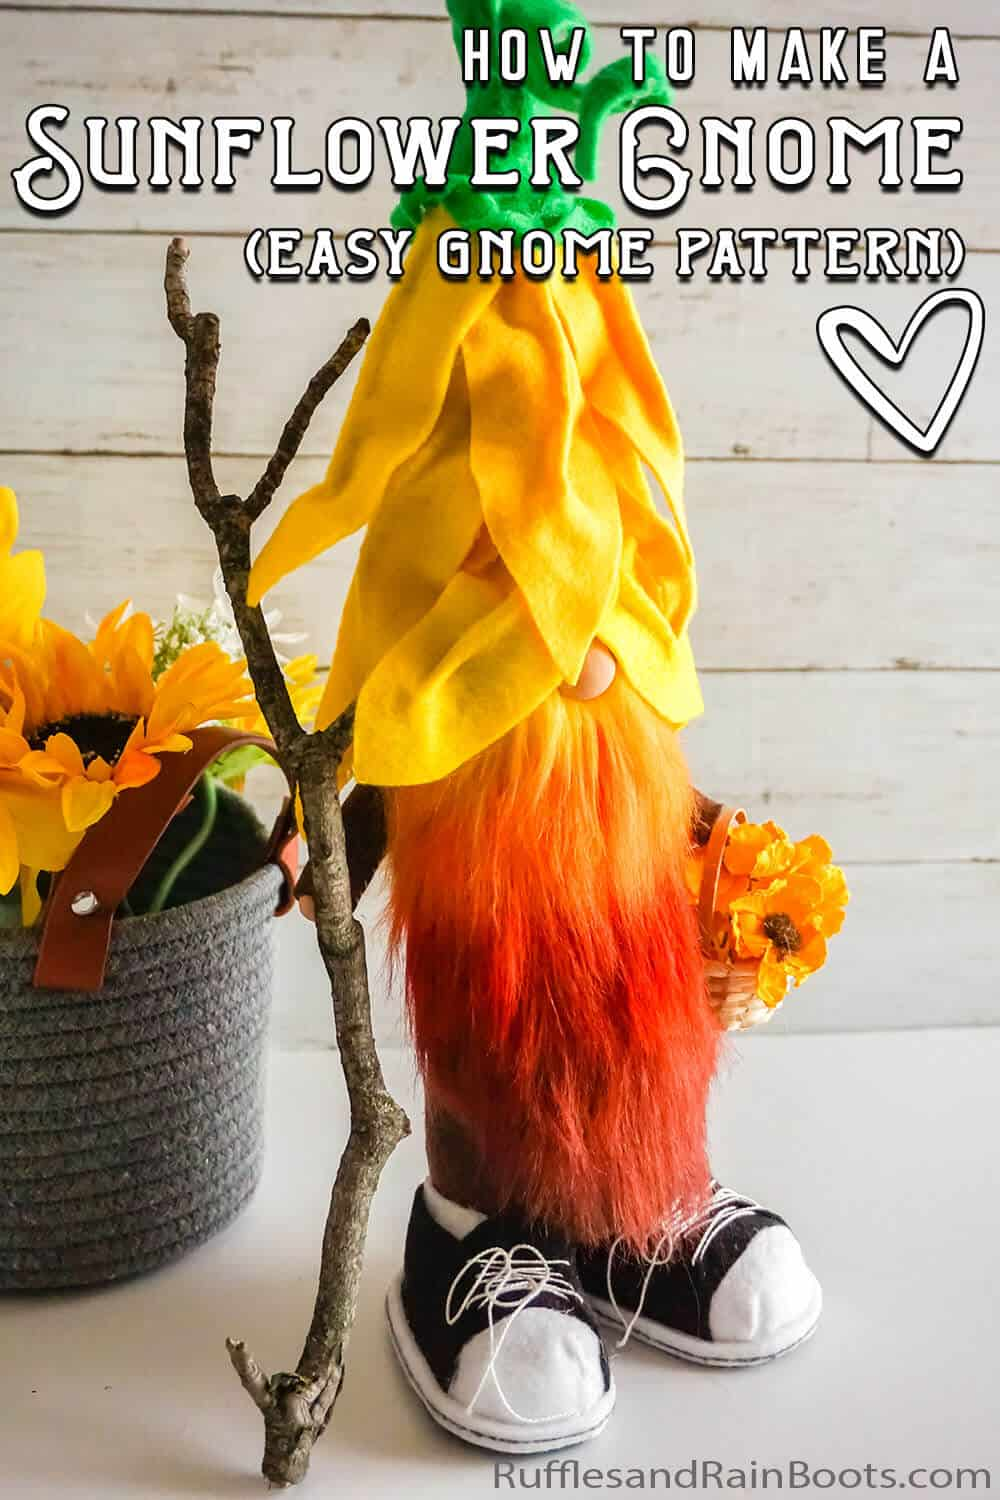 easy pattern for a gnome with a flower hat with text which reads how to make a sunflower gnome (easy gnome pattern)